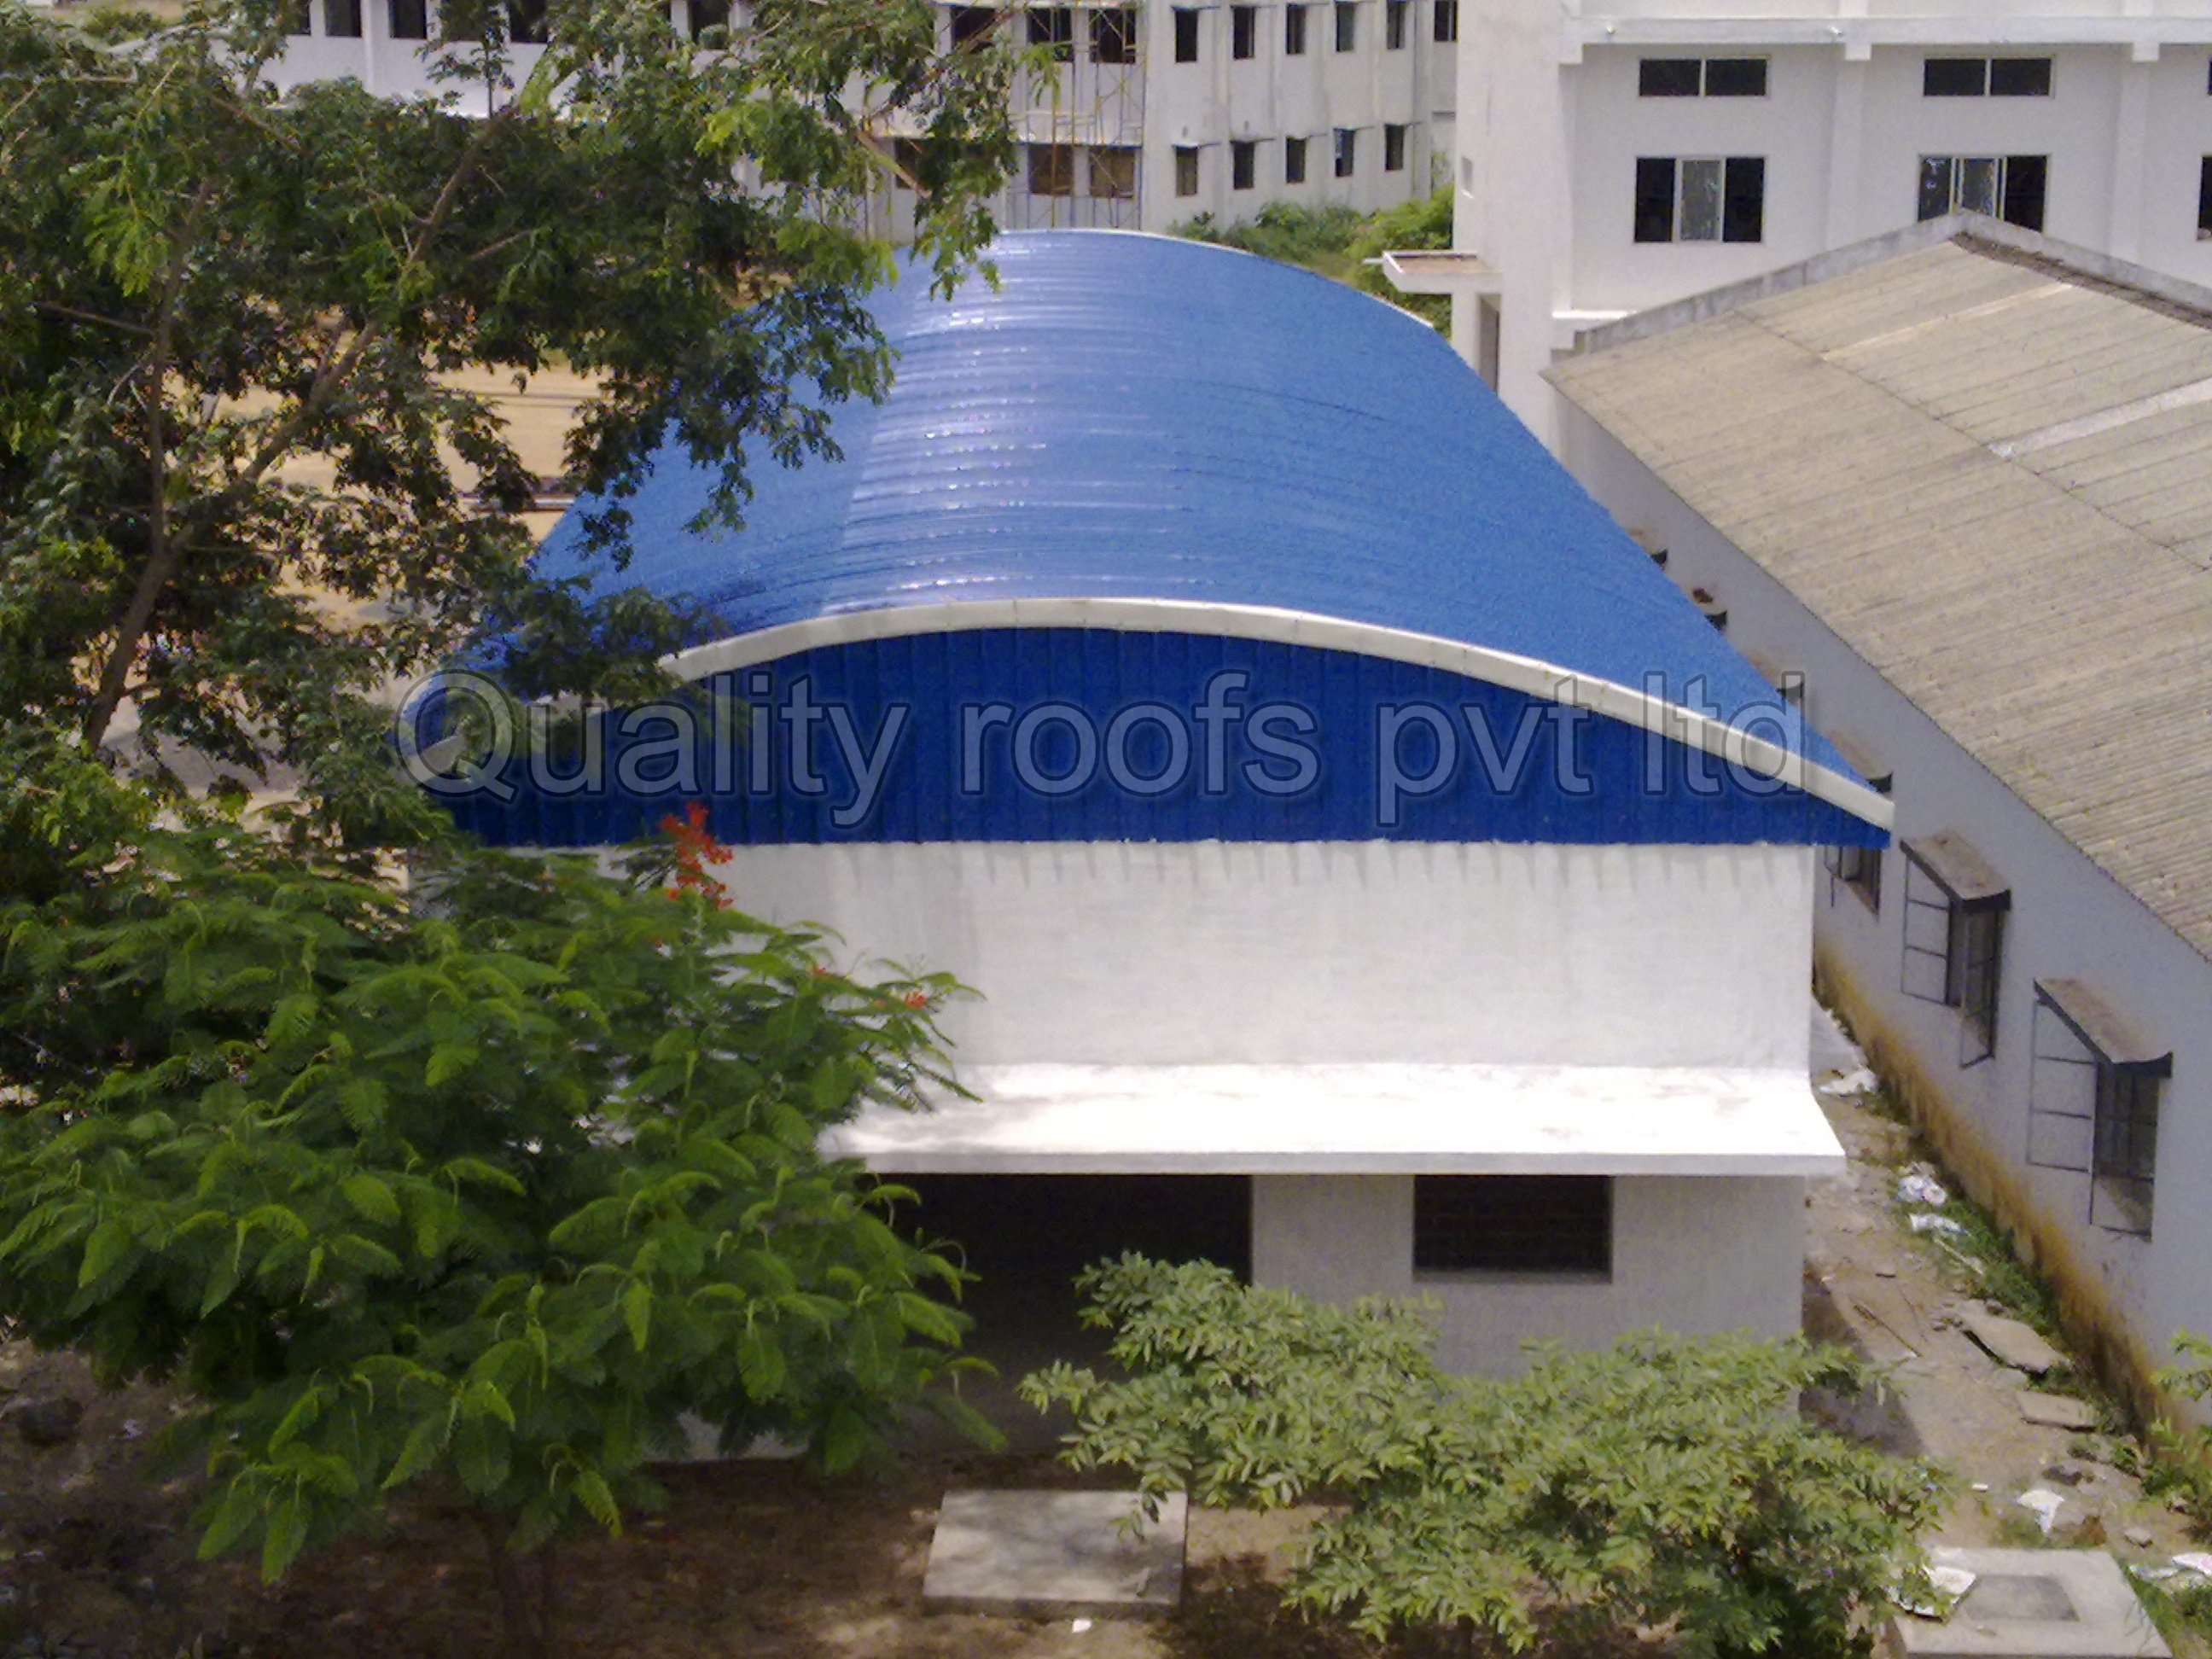 Quality Roofs Pvt Ltd, #Roofing Contractors In Tambaram # Roofing Contractors #  Metal Roofing Work # Metal Roofing Work Tambaram # Roofing In Tambaram